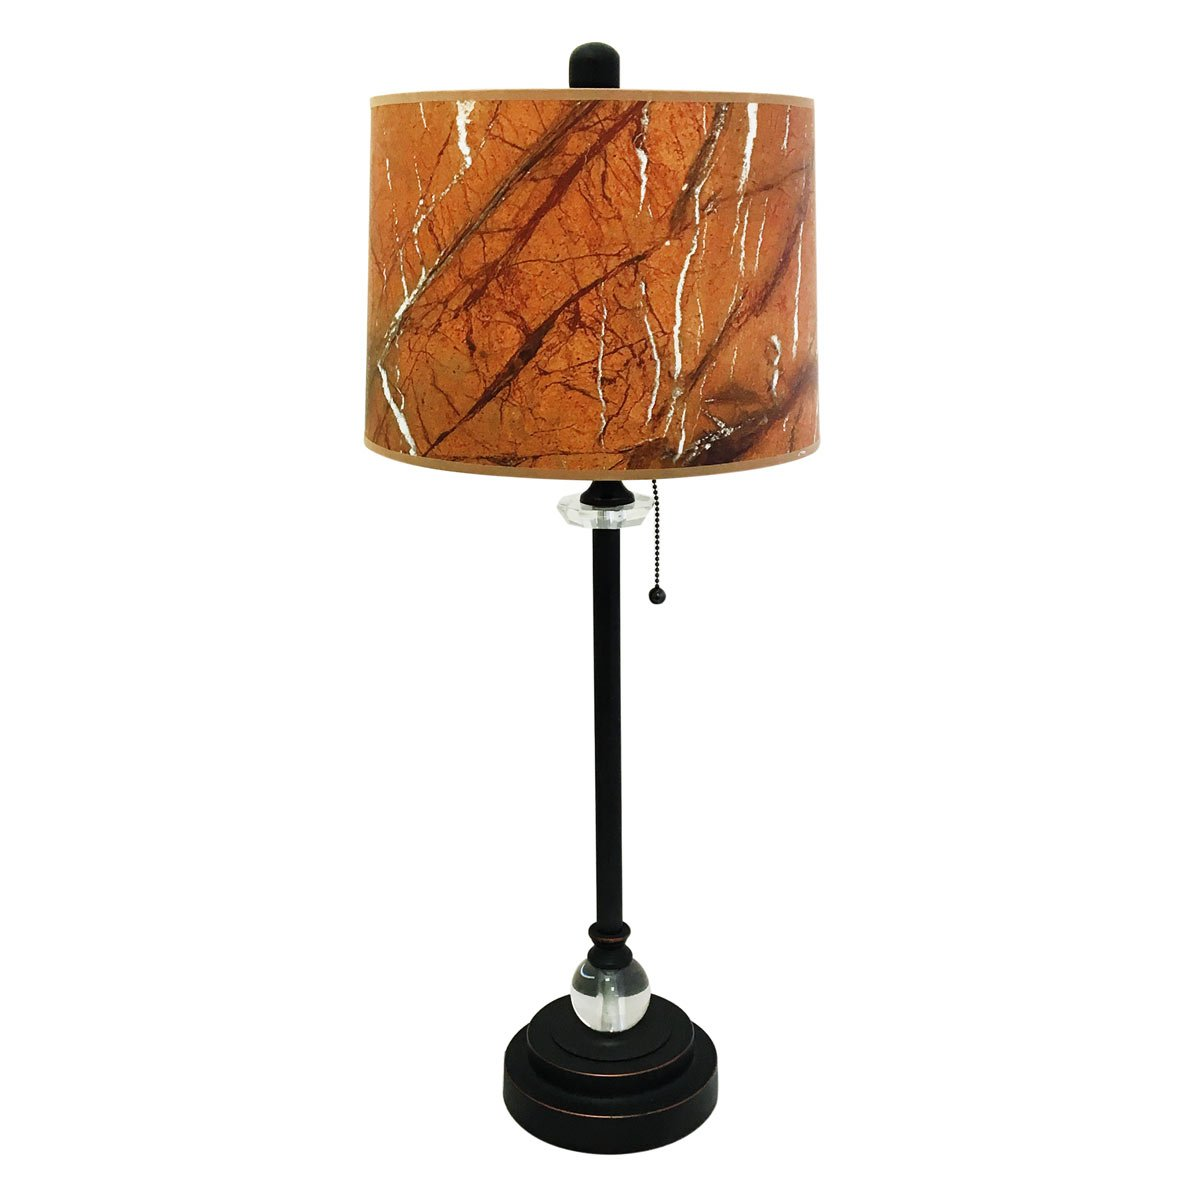 Royal Designs 28'' Crystal and Oil Rub Bronze Buffet Lamp with Orange Marble Texture Hardback Lamp Shade